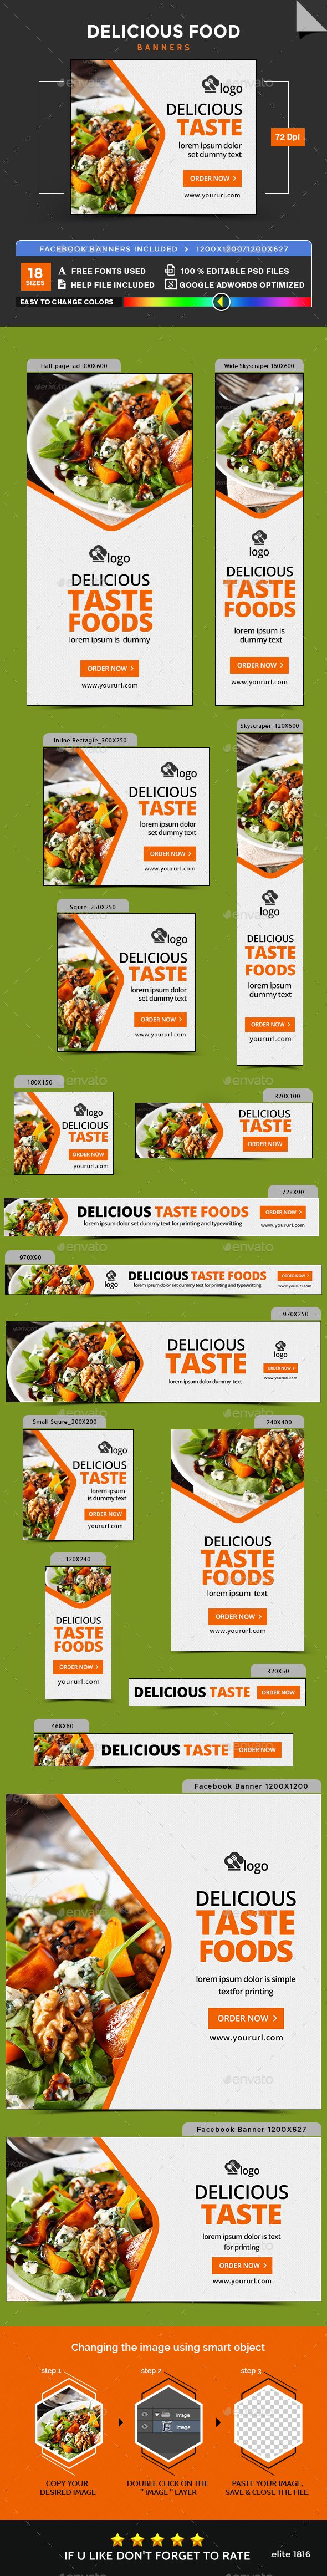 Delicious Food Banners — Photoshop PSD #sales #multi purpose • Available here → https://graphicriver.net/item/delicious-food-banners/17907910?ref=pxcr